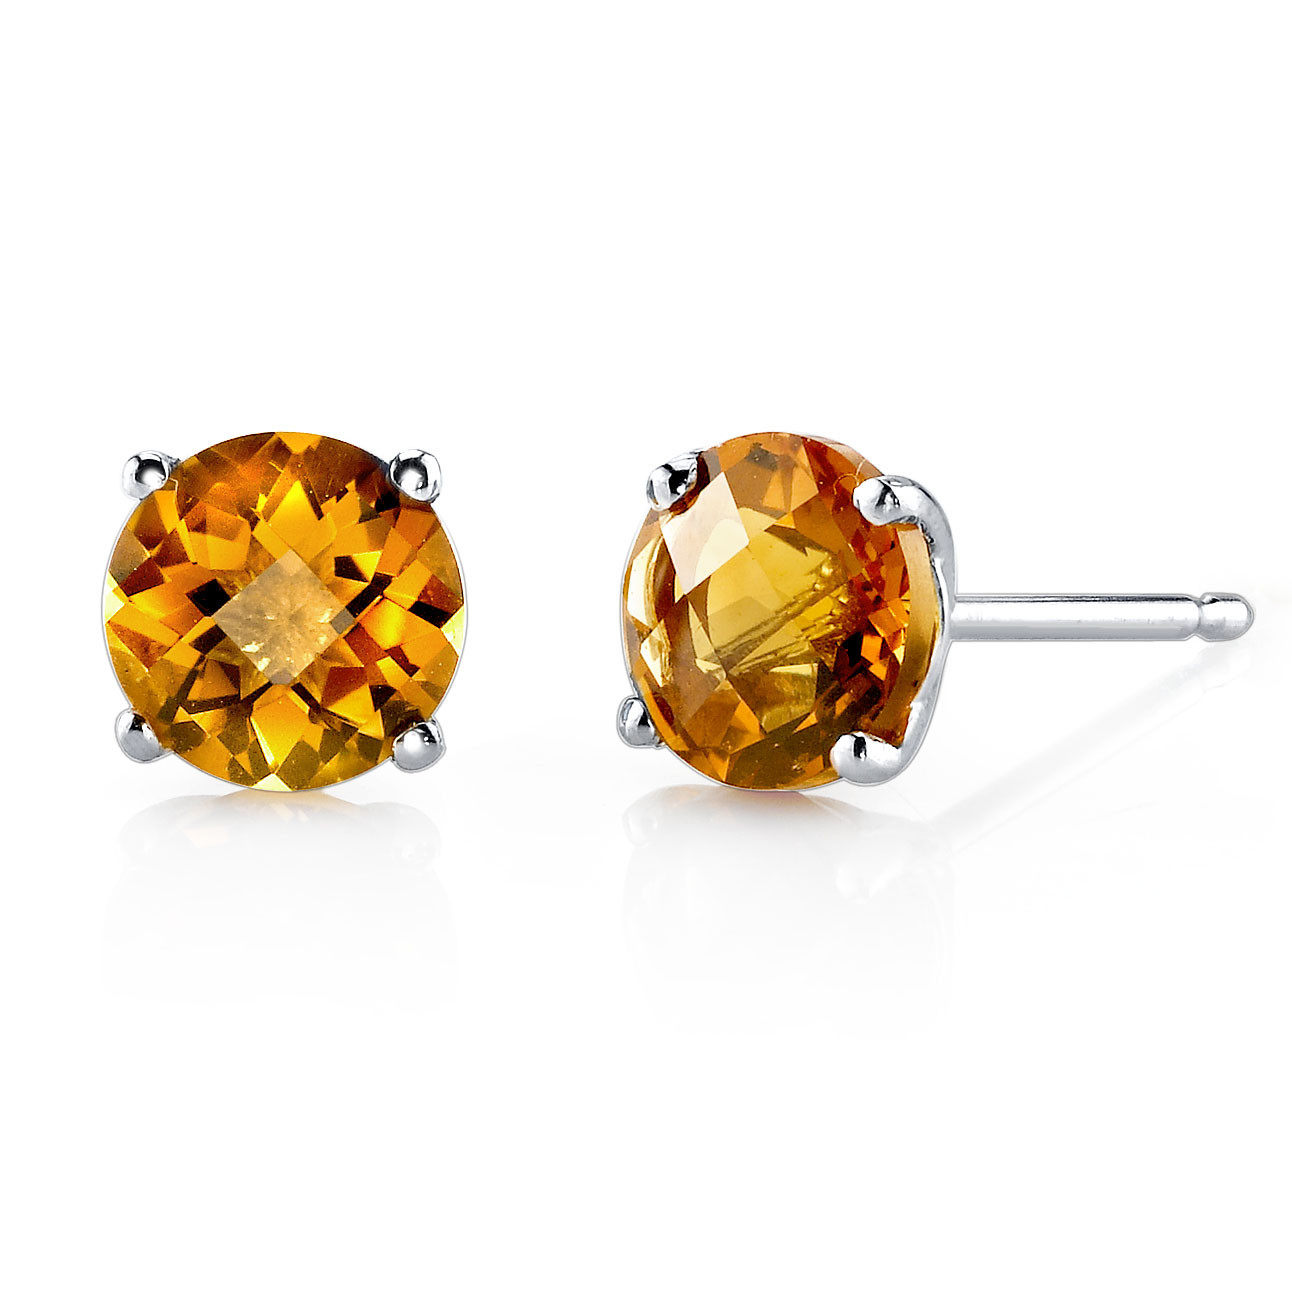 5aef67abd3430 Citrine Stud Earrings in 9ct White Gold